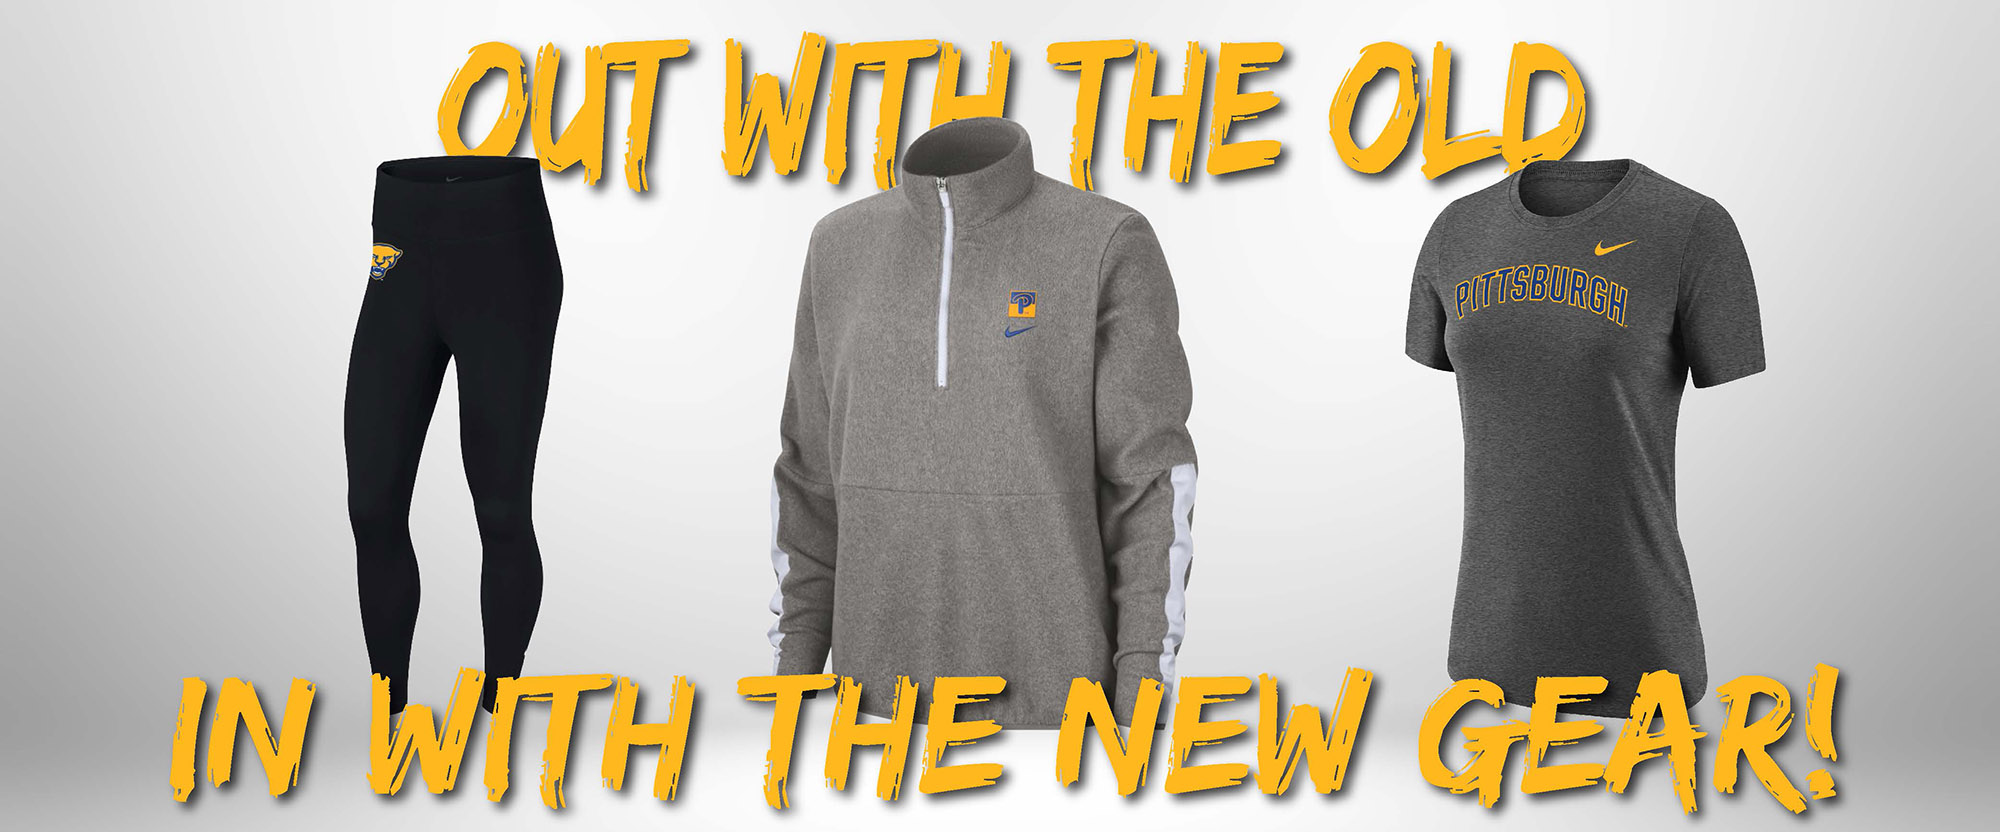 get your new gear for the new year